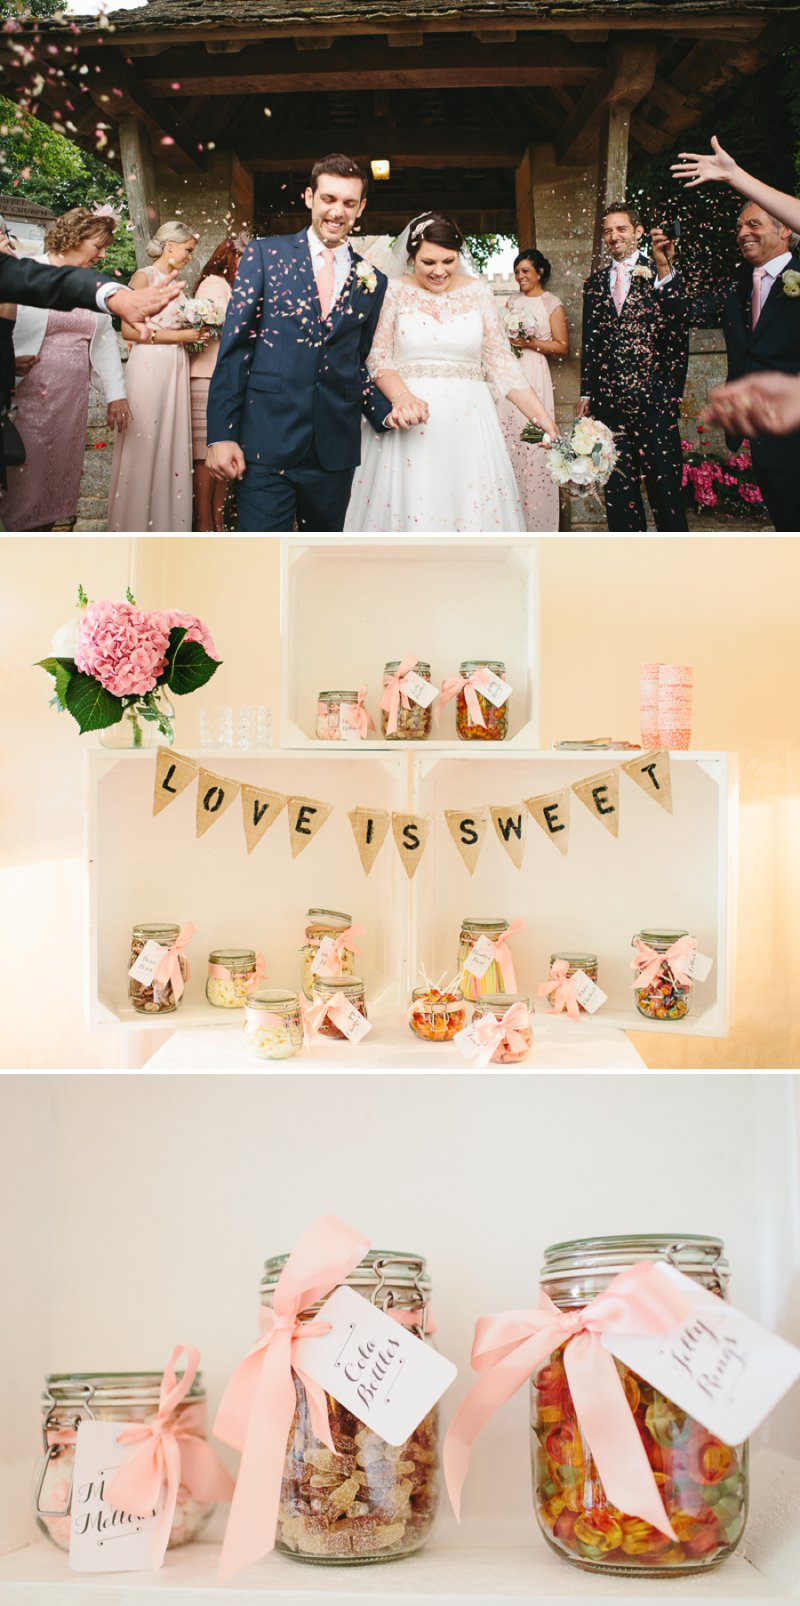 Blush Pink And Gold Glitter Themed Wedding At The Rectory Hotel With Bride In Bespoke Gown By Dana Bolton And Groom In Ted Baker Pashion Suit With Elegant Typography Across The Paper Goods And Images By Shell de Mar Photography 1